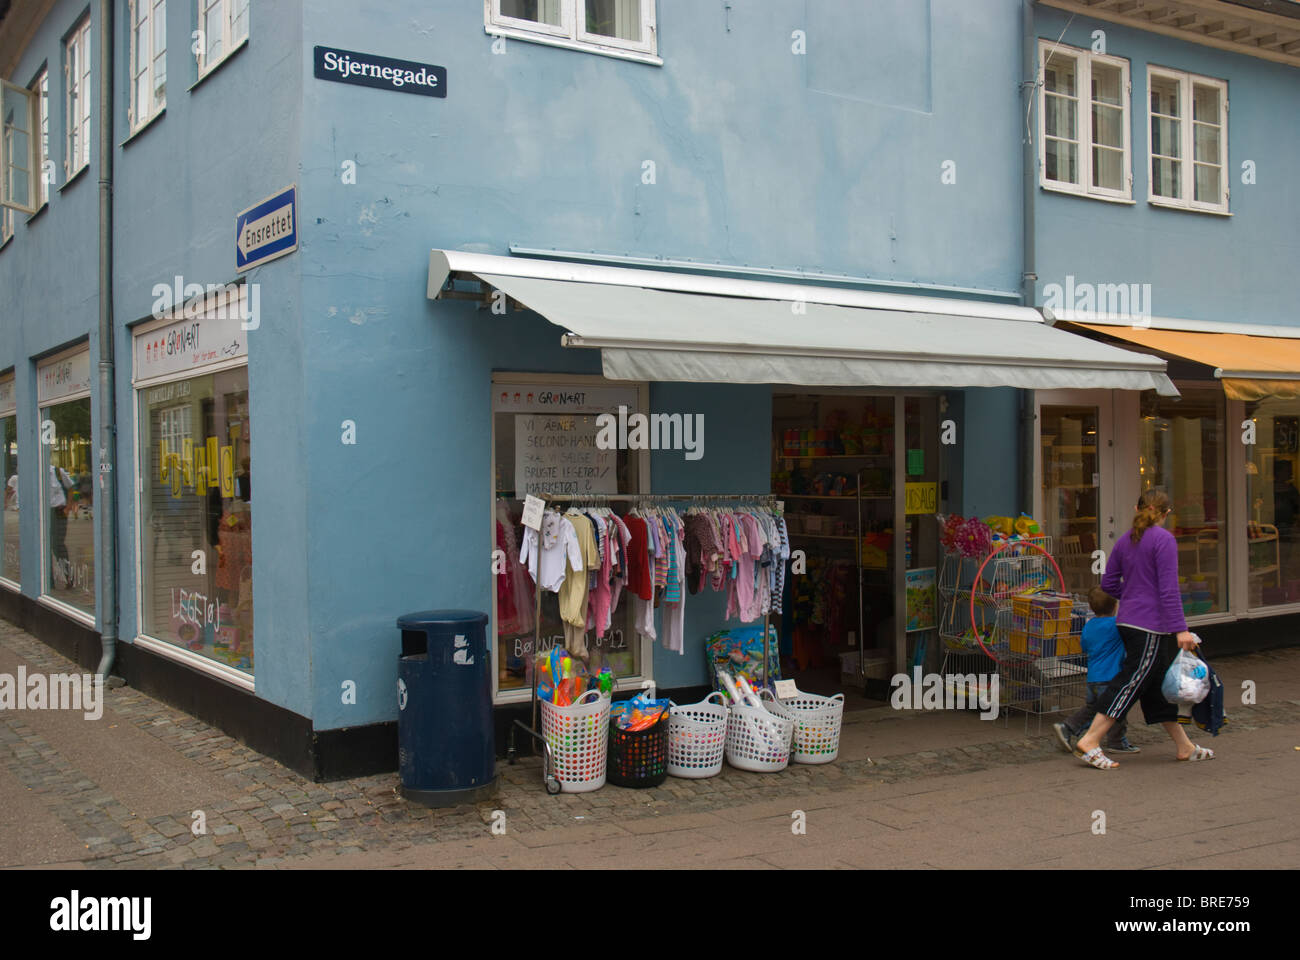 Shops in medieval town of Helsingor north Sjaelland Denmark Europe - Stock Image